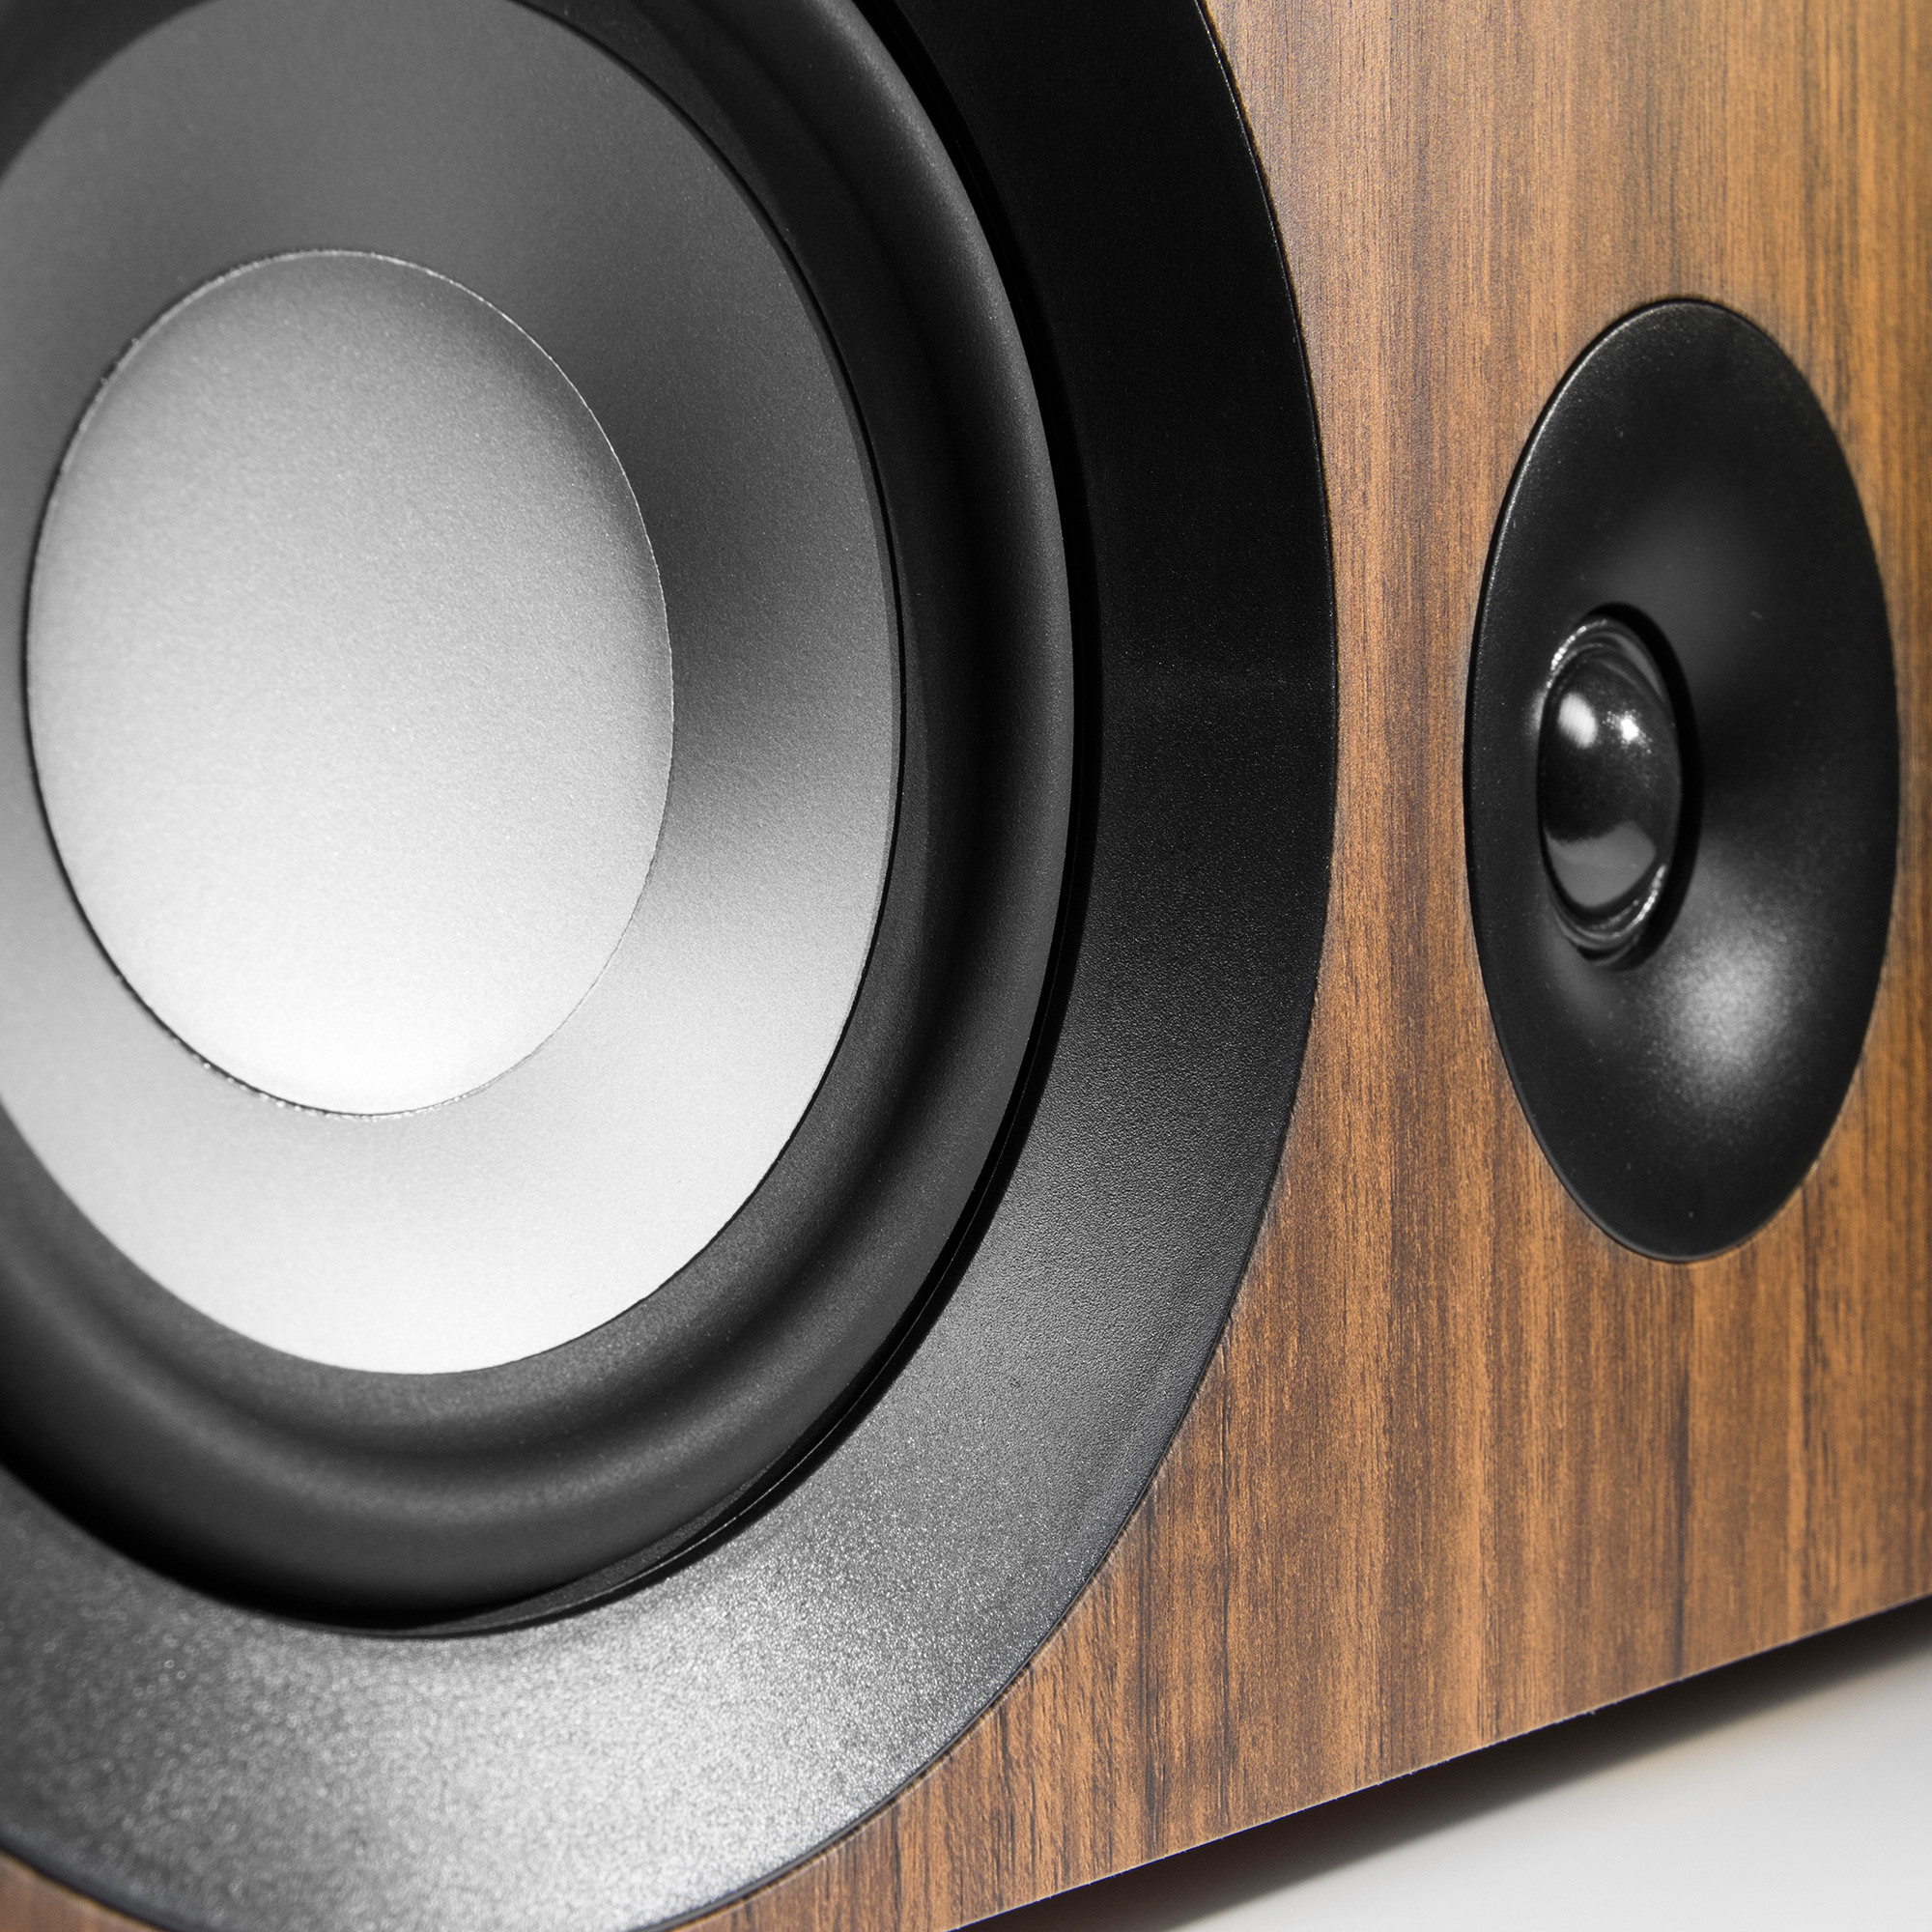 S 81 CEN Center Speaker